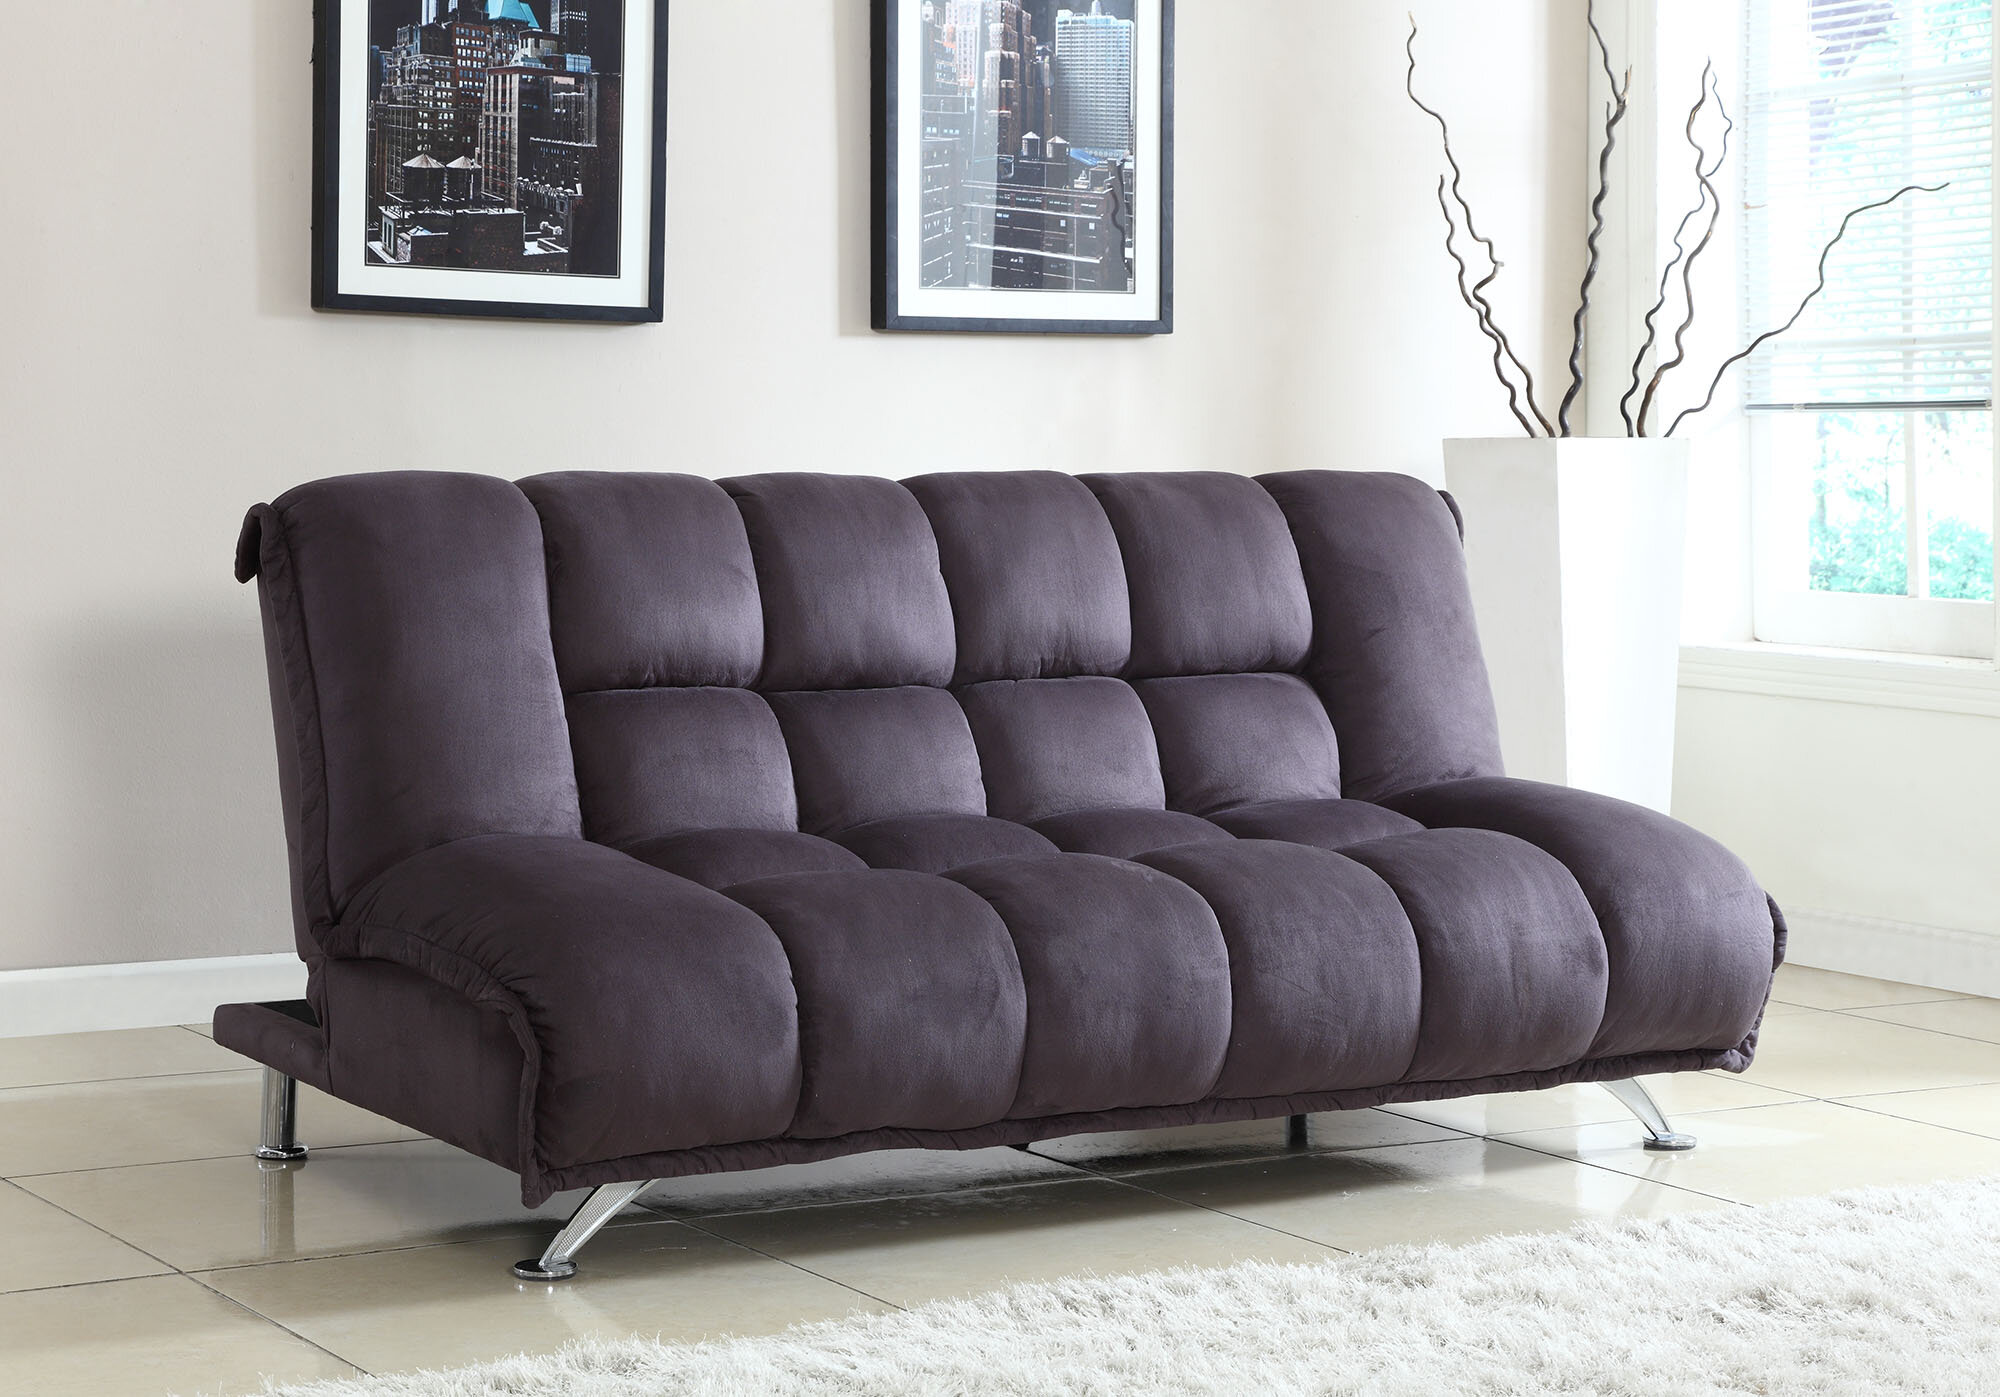 home garden foam and product free mattress paris serta certipur overstock shipping on cotton chestnut to sleep futon comfortable futons frame today